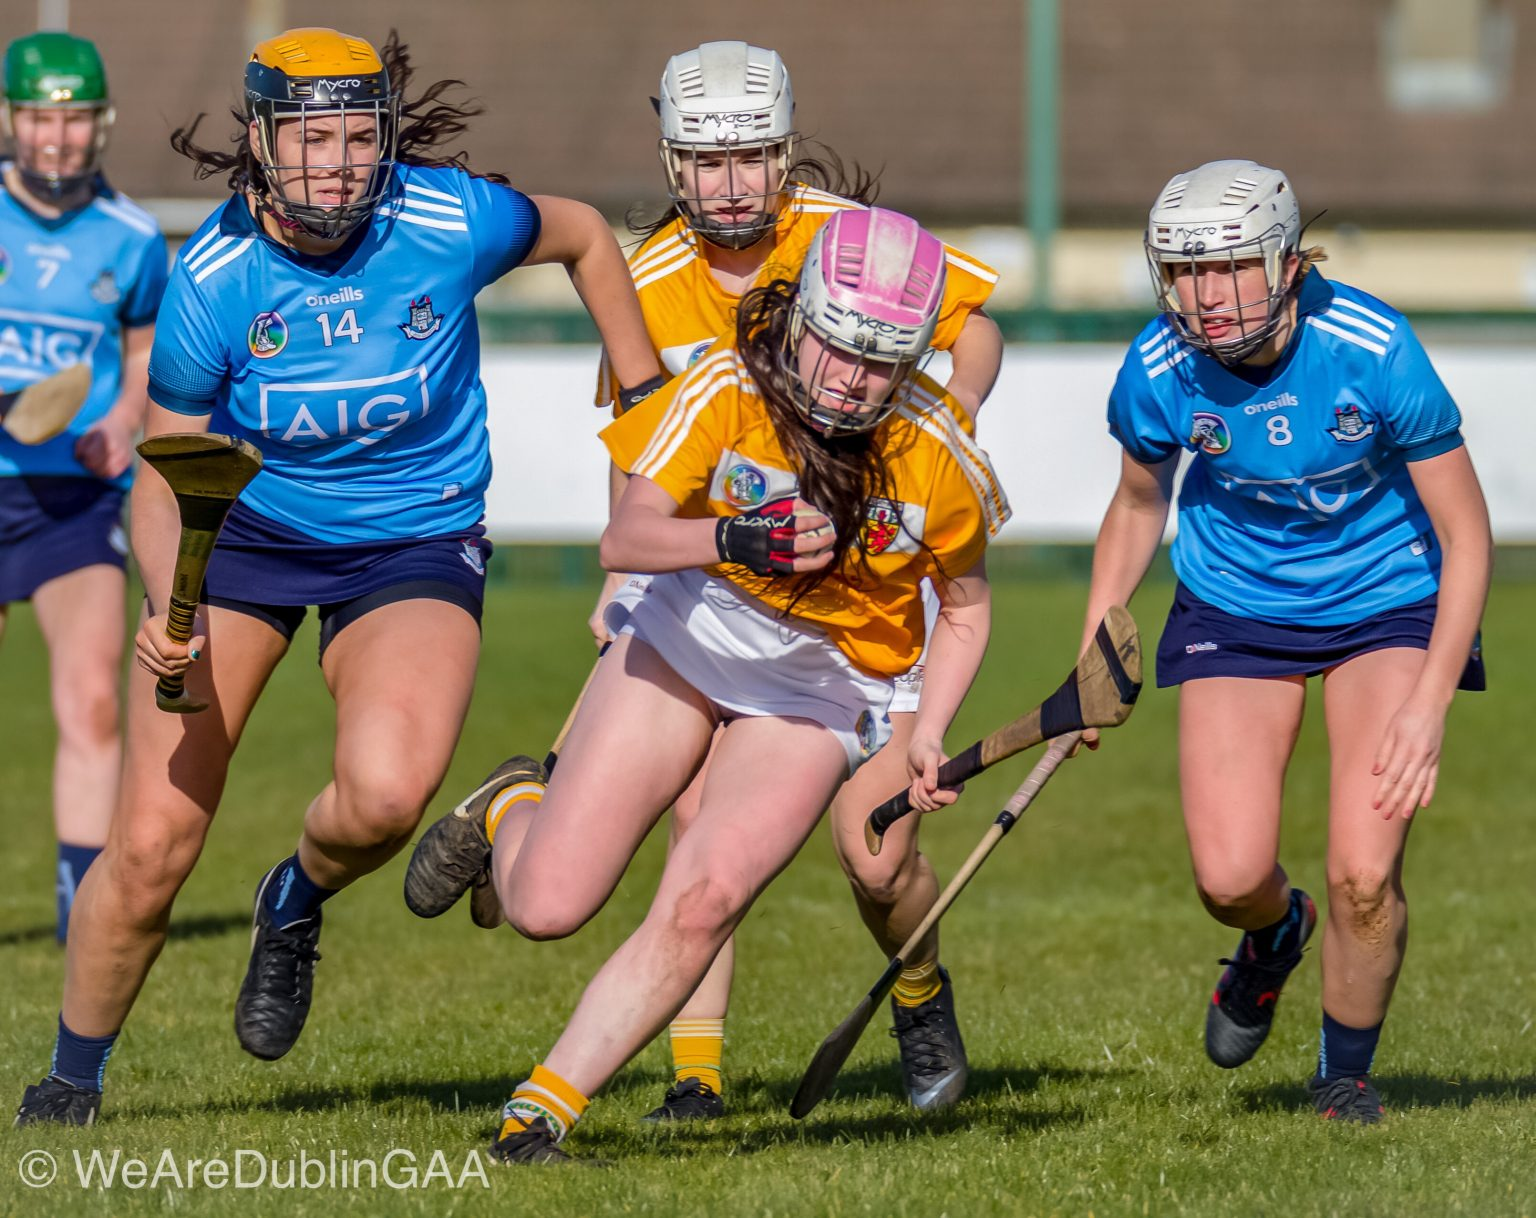 Two Dublin Camogie Players in sky blue jerseys and navy skorts tackle an Antrim player in yellow jersey and white shorts